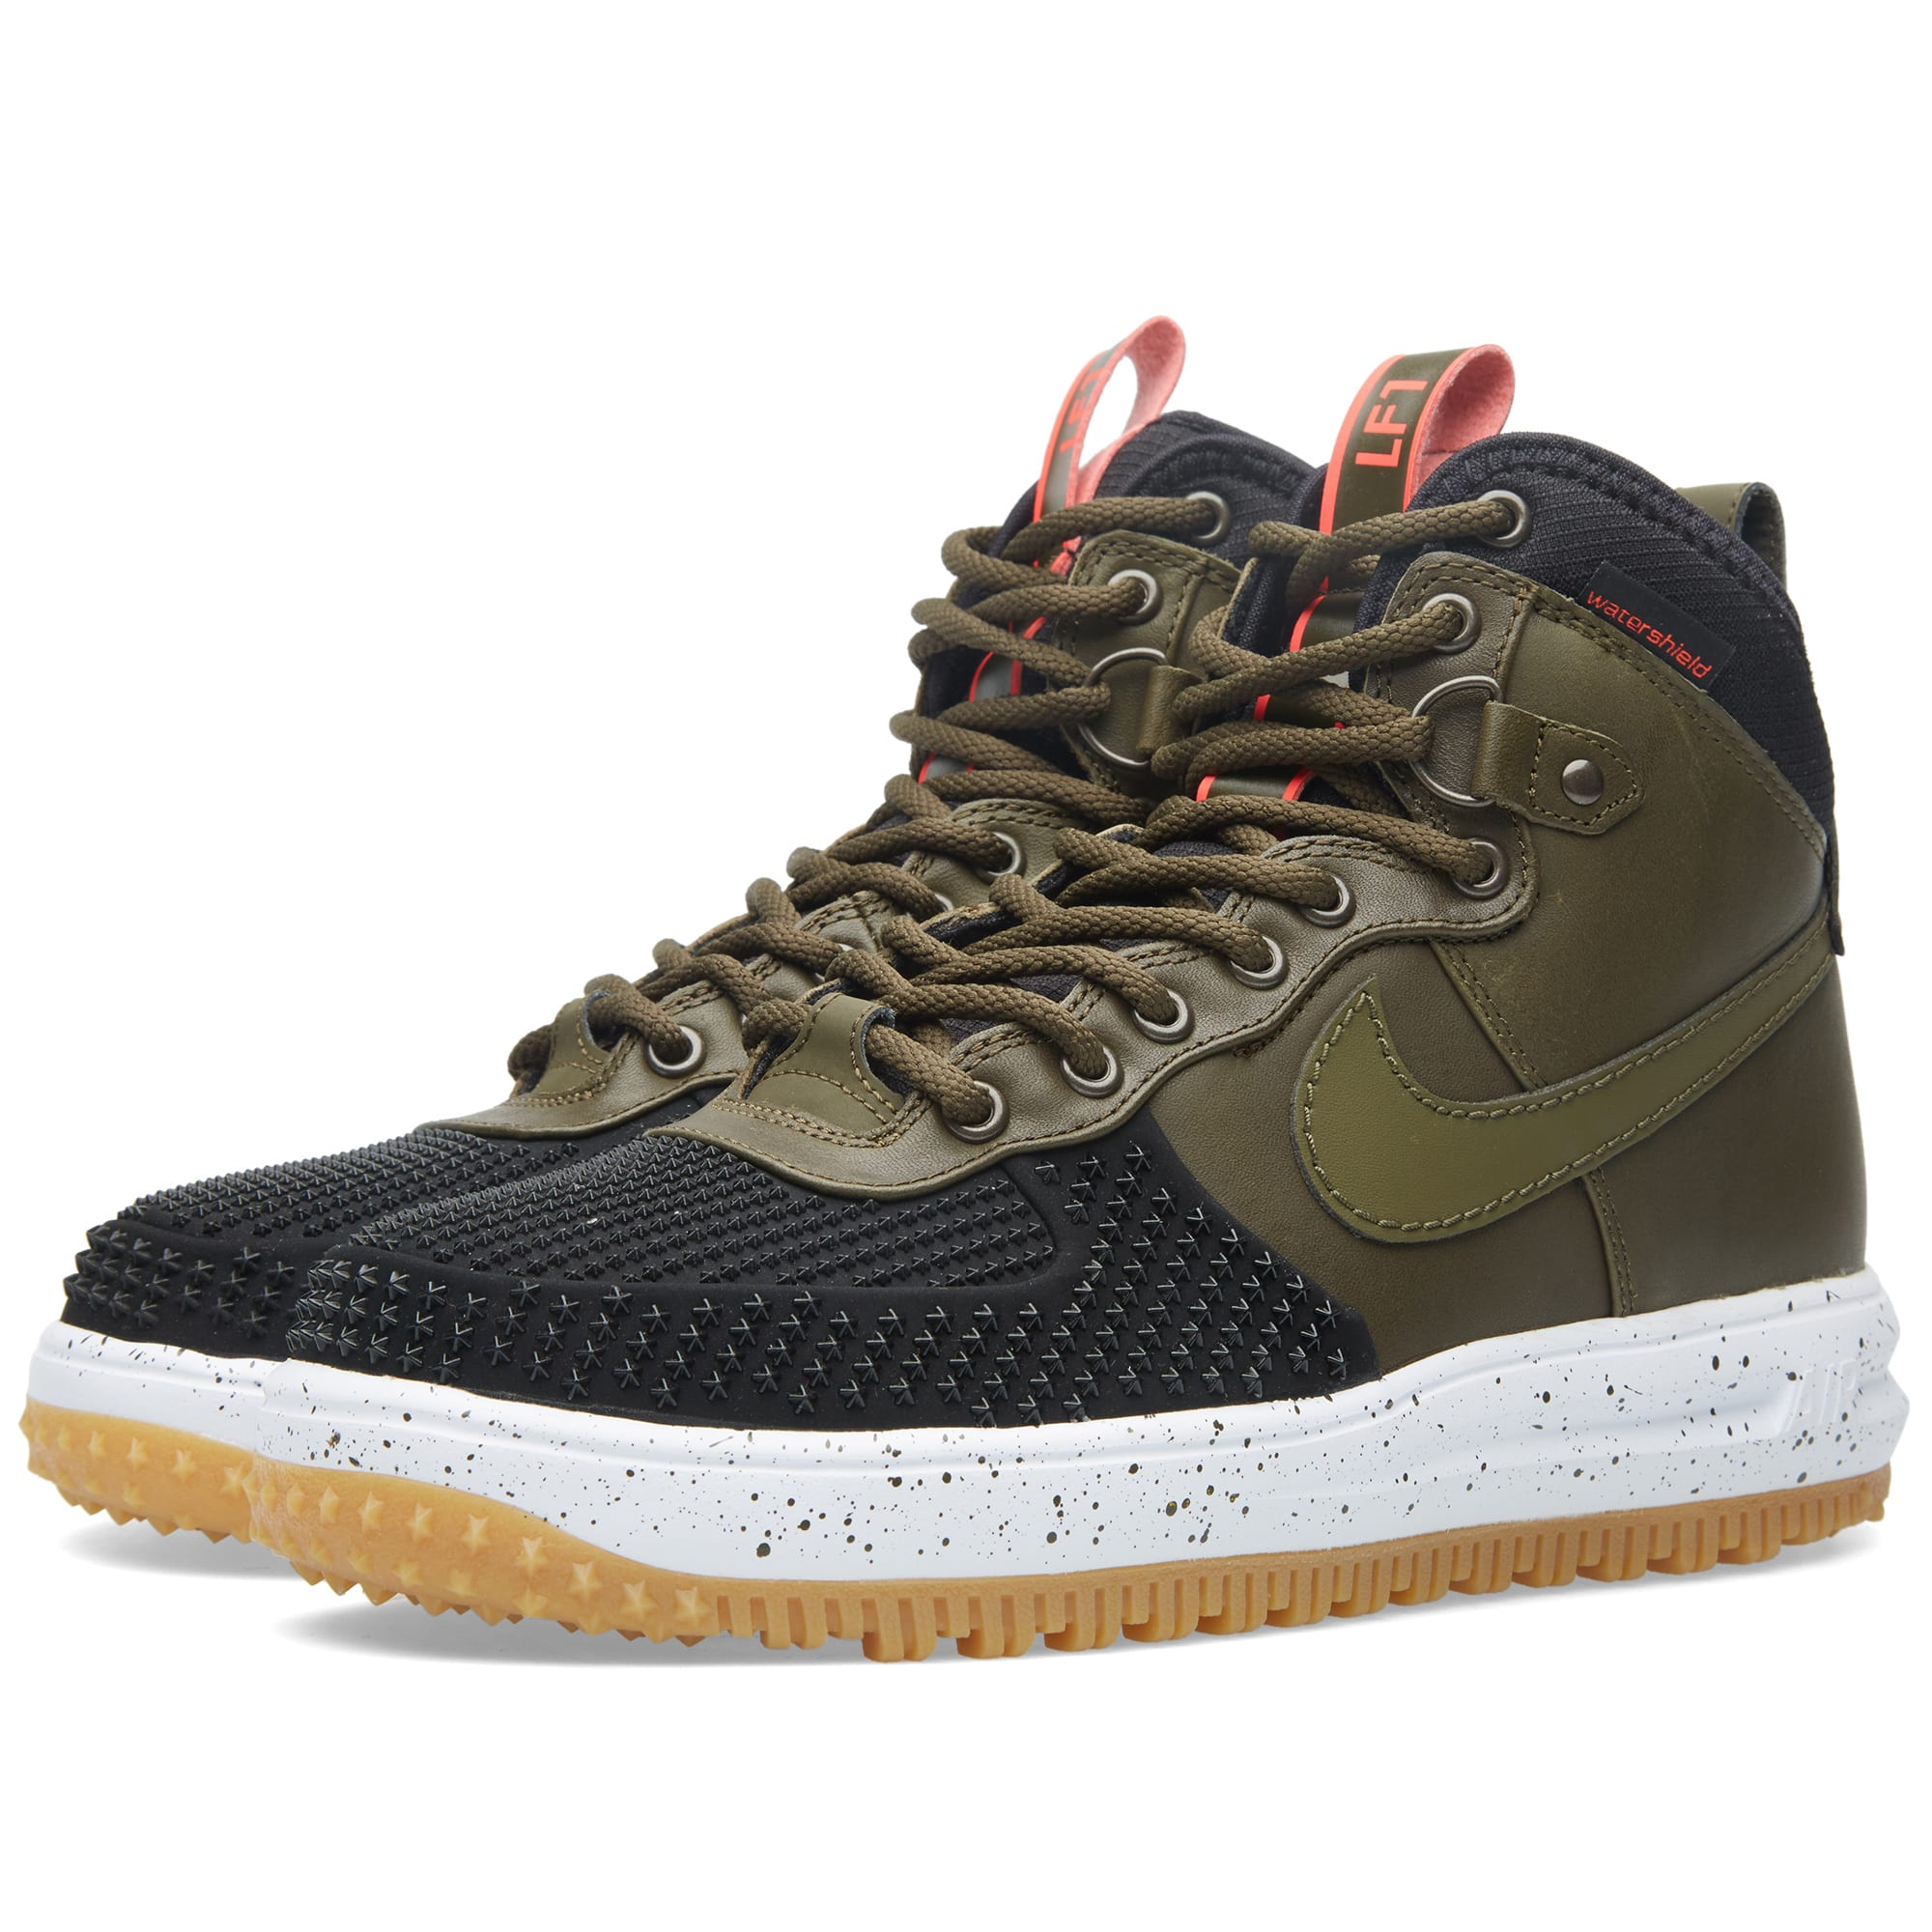 nike lunar force 1 duckboot black dark loden. Black Bedroom Furniture Sets. Home Design Ideas